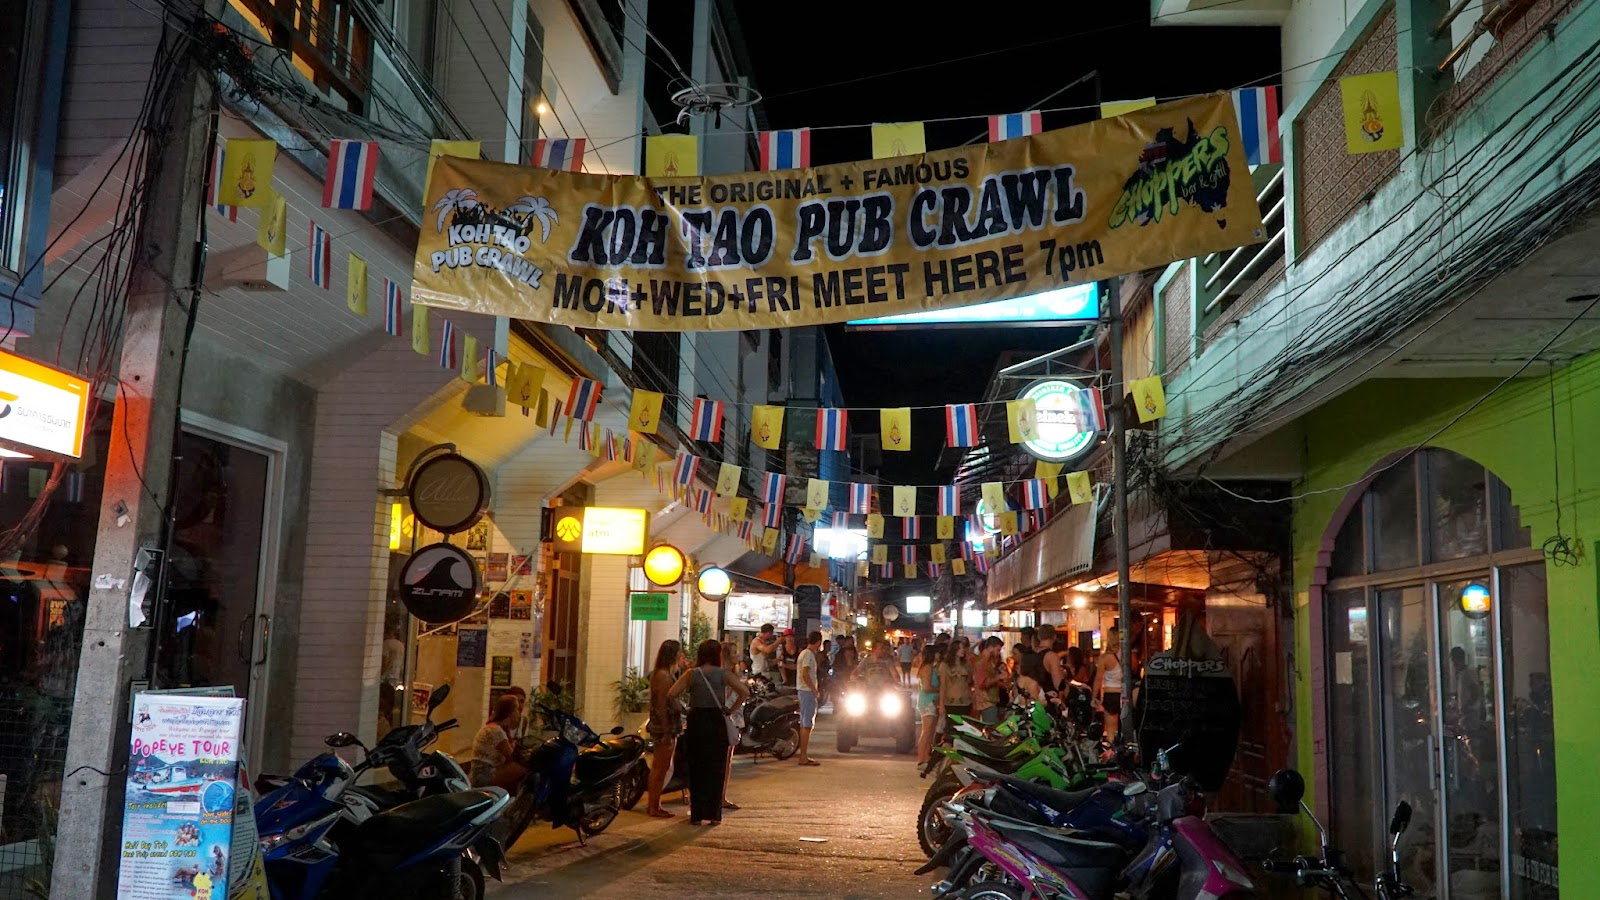 The Koh Tao pubcrawl takes place here every Monday, Wednesday and Friday, so come on these days if you want to take part in the fun